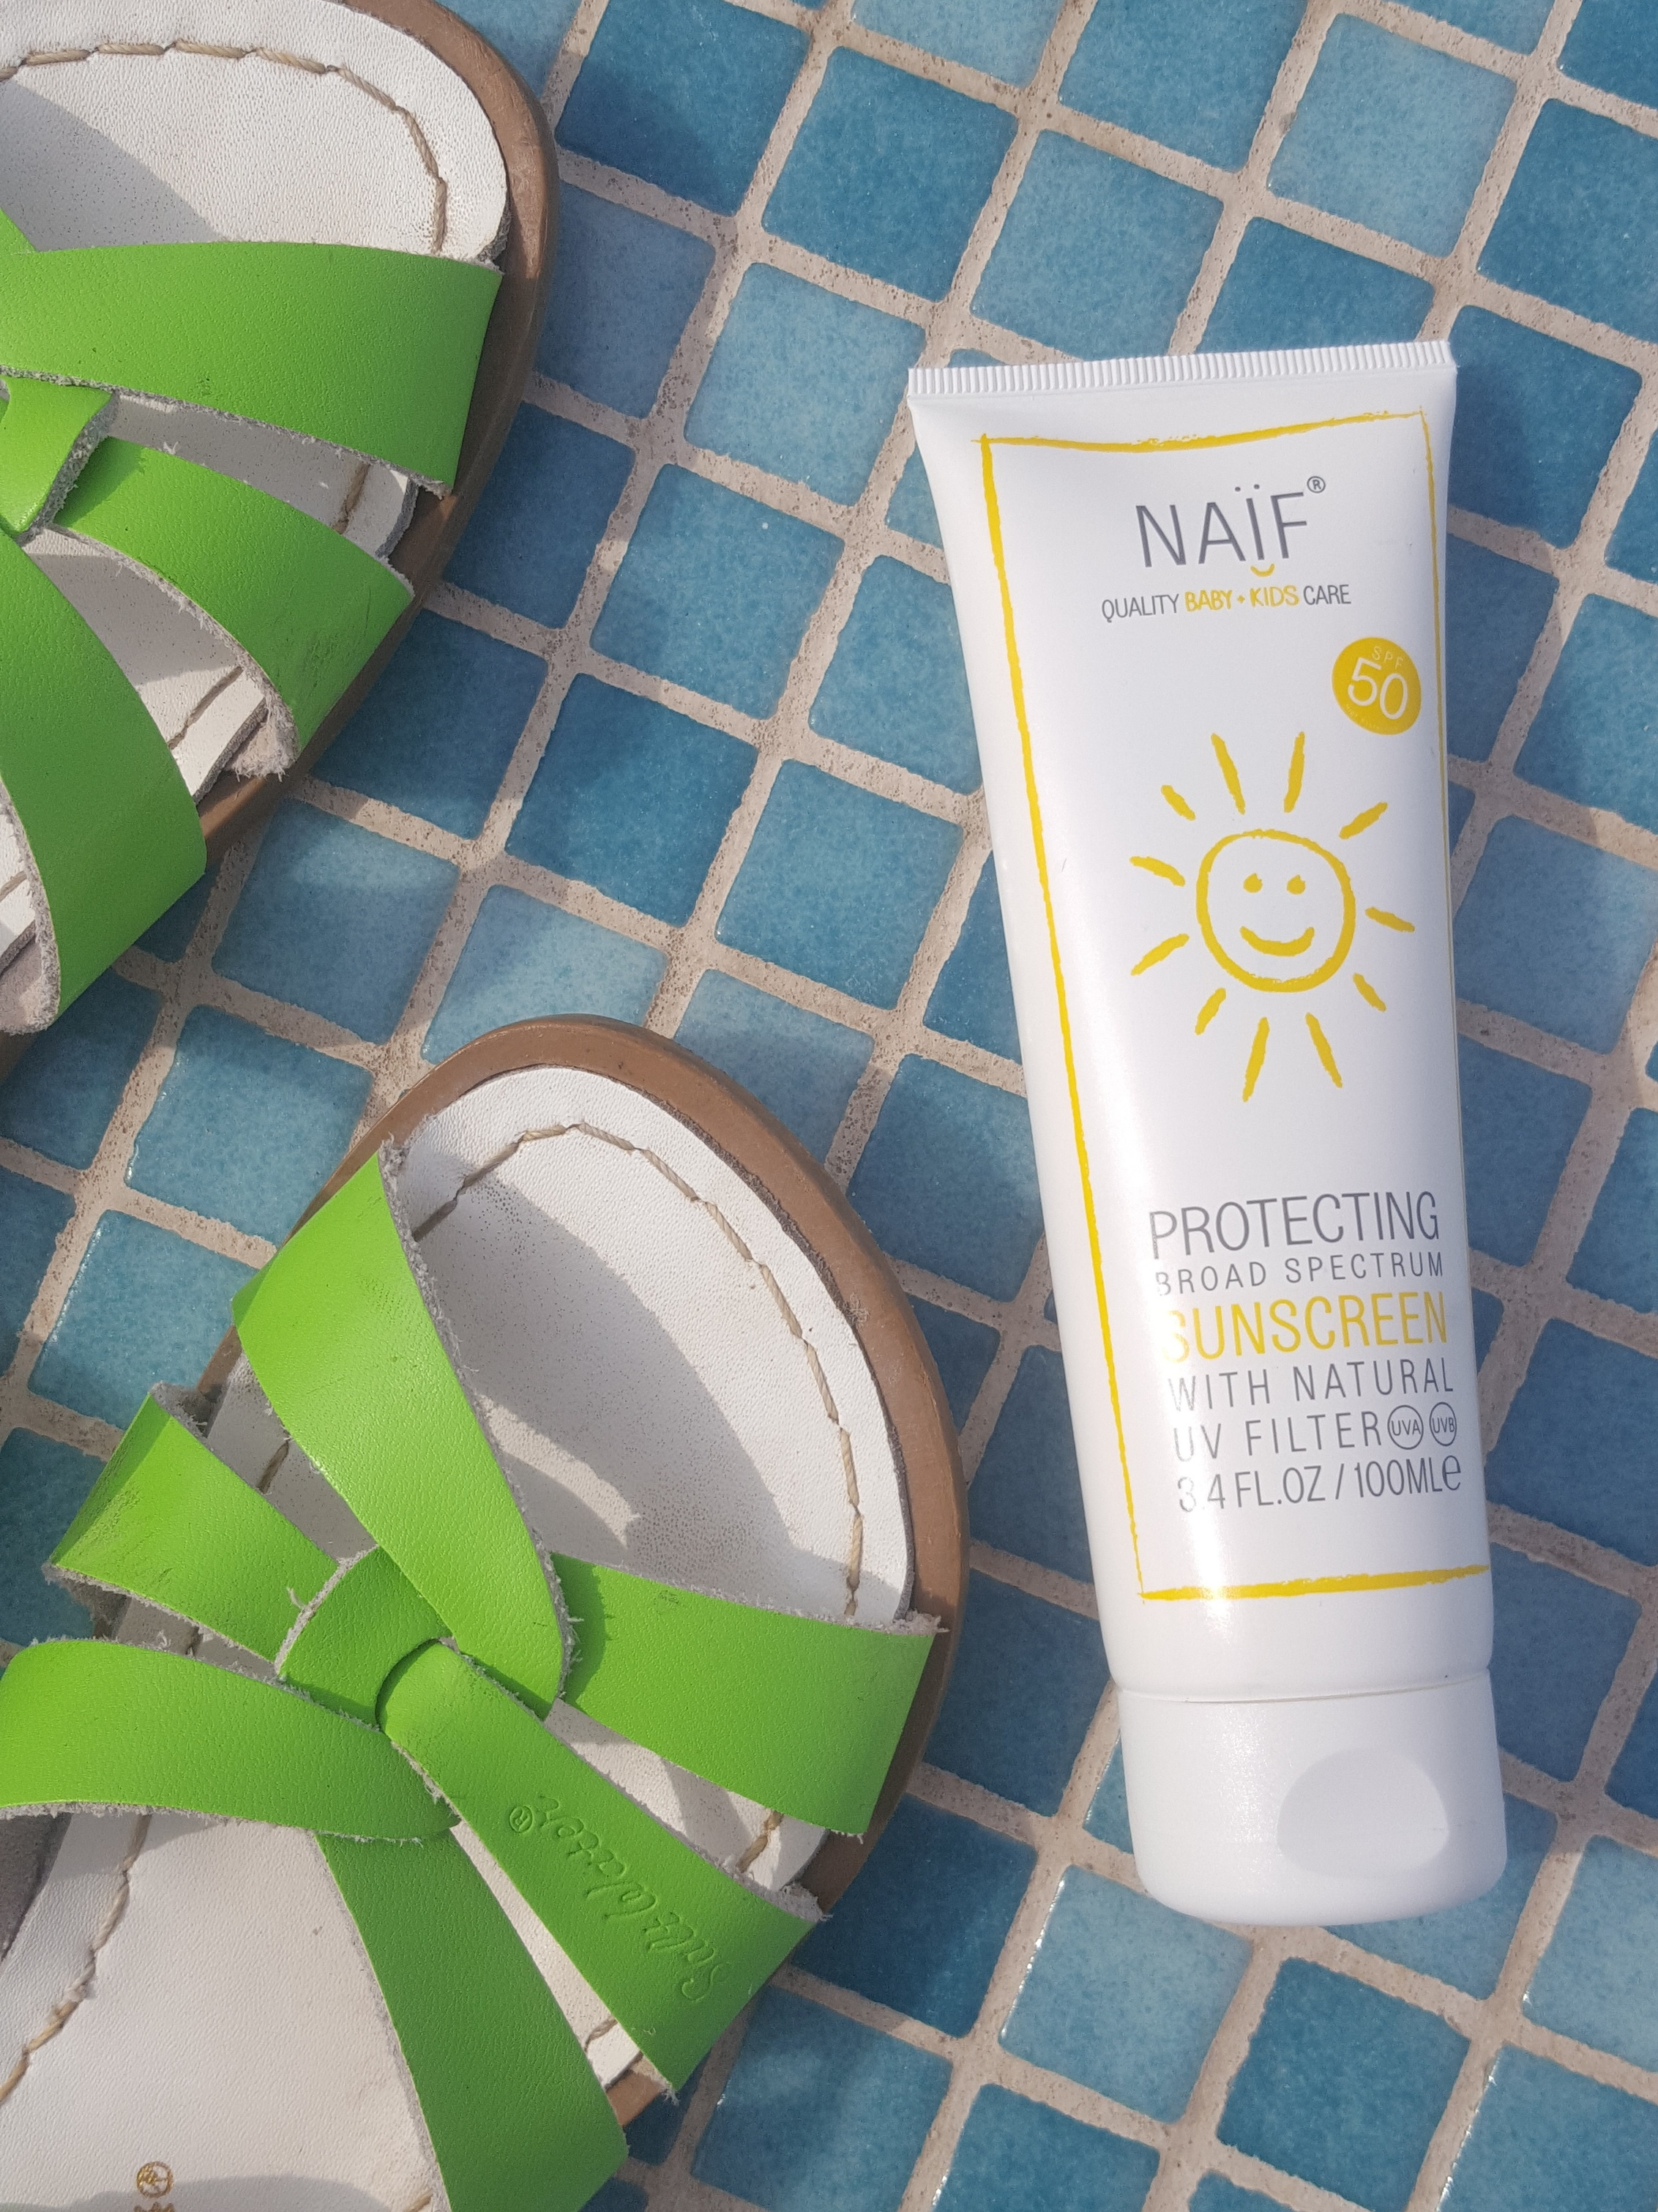 Naif SPF 50 Protecting Sunscreen for babies and kids